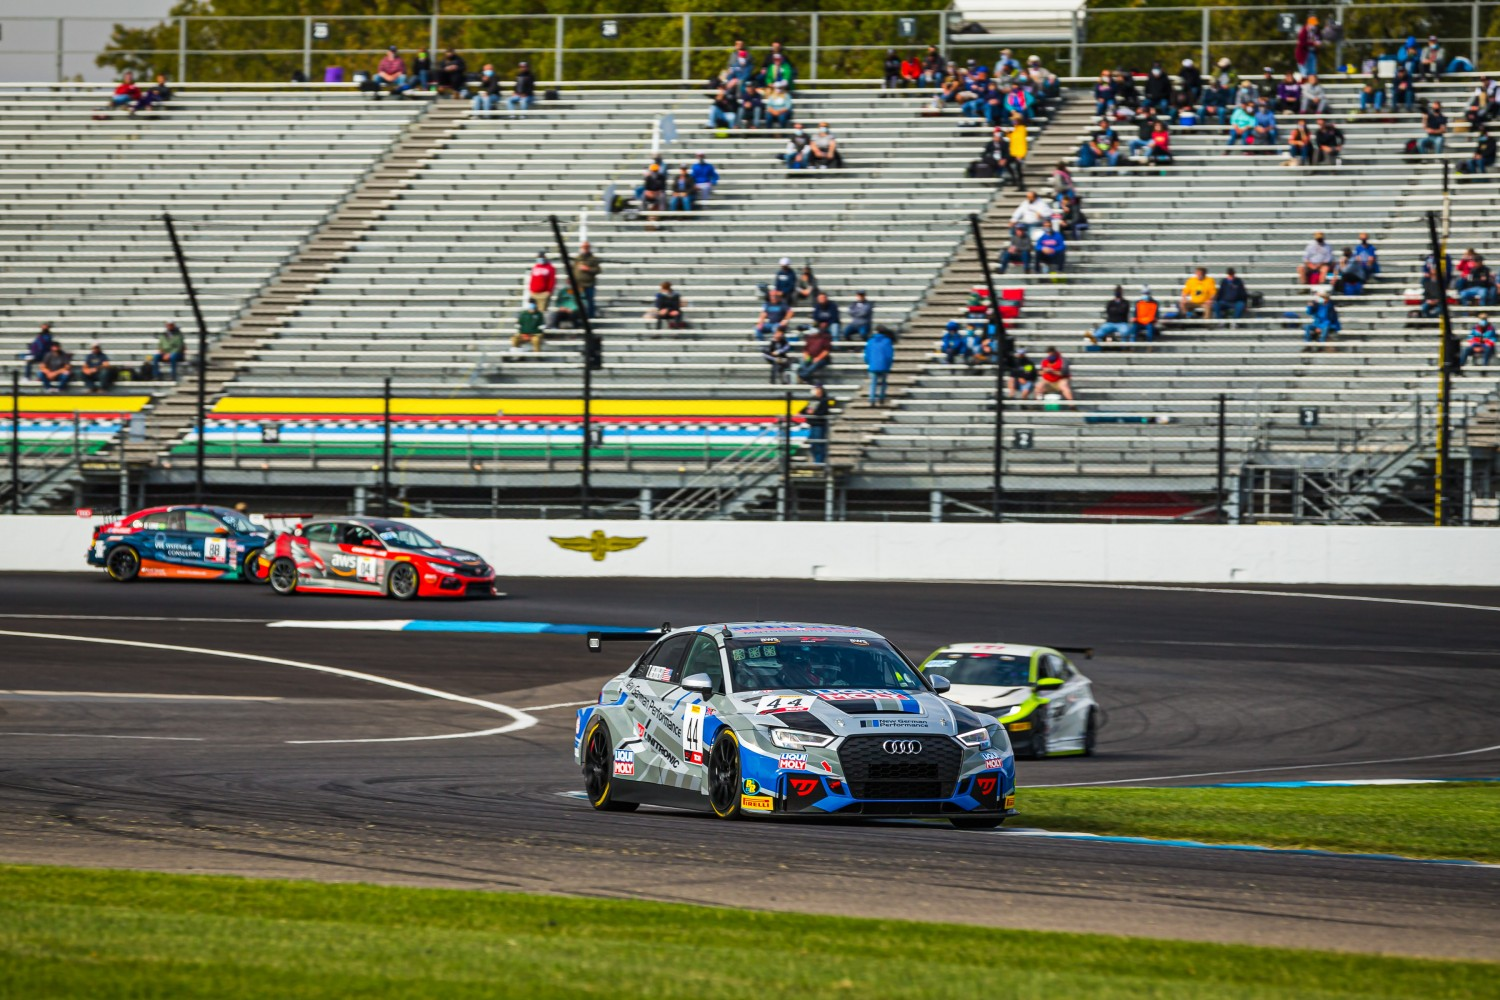 #44 Audi Sport RS3 LMS of Tristan Herbert, New German Performance, TC, IN, Indianapolis, Indianapolis Motor Speedway, SRO, September 2020.  | Fabian Lagunas/SRO